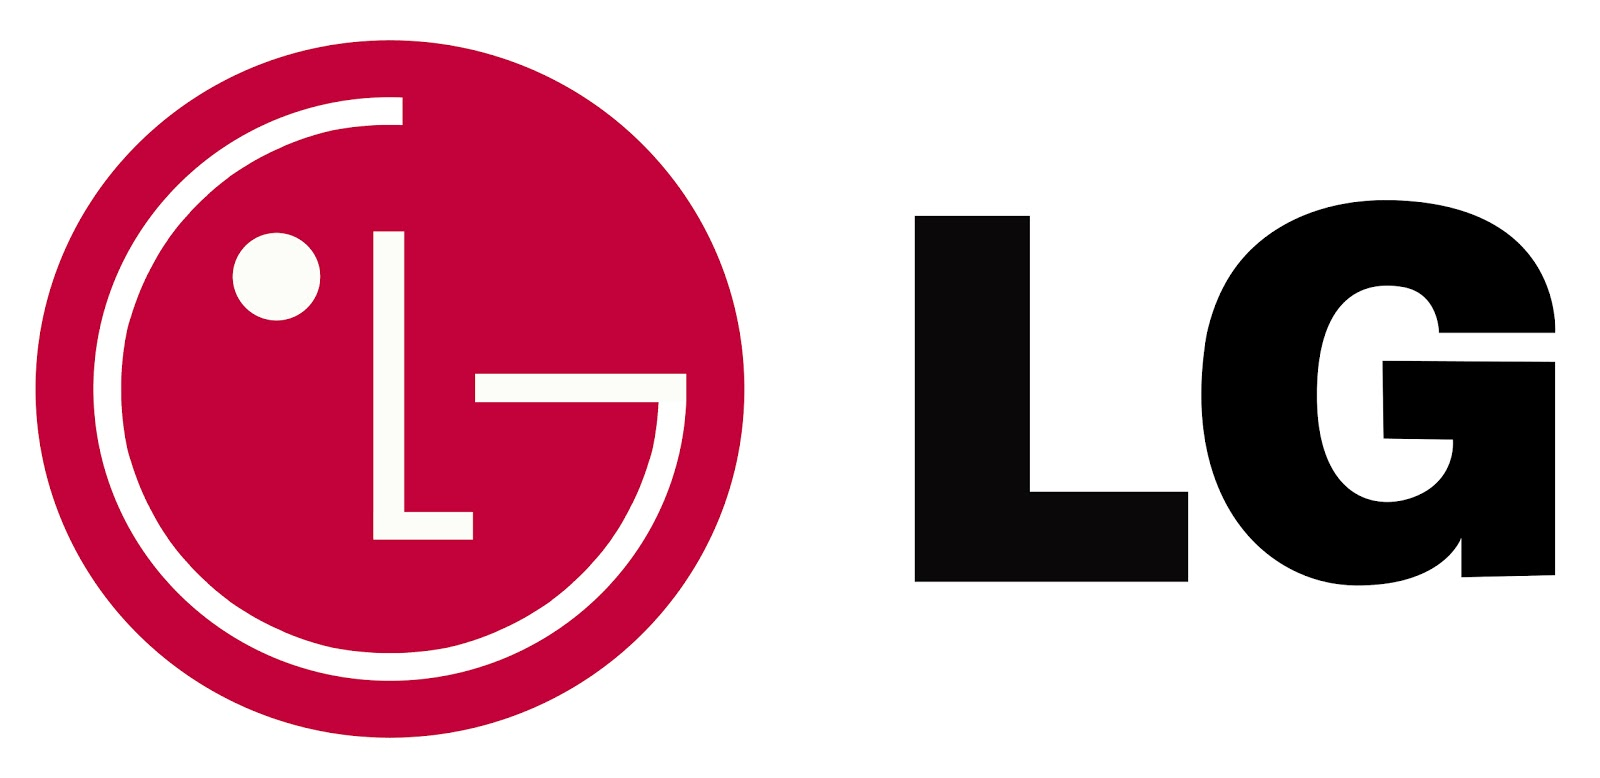 Making LGUP work on LG devices with uppercut tool - Flash